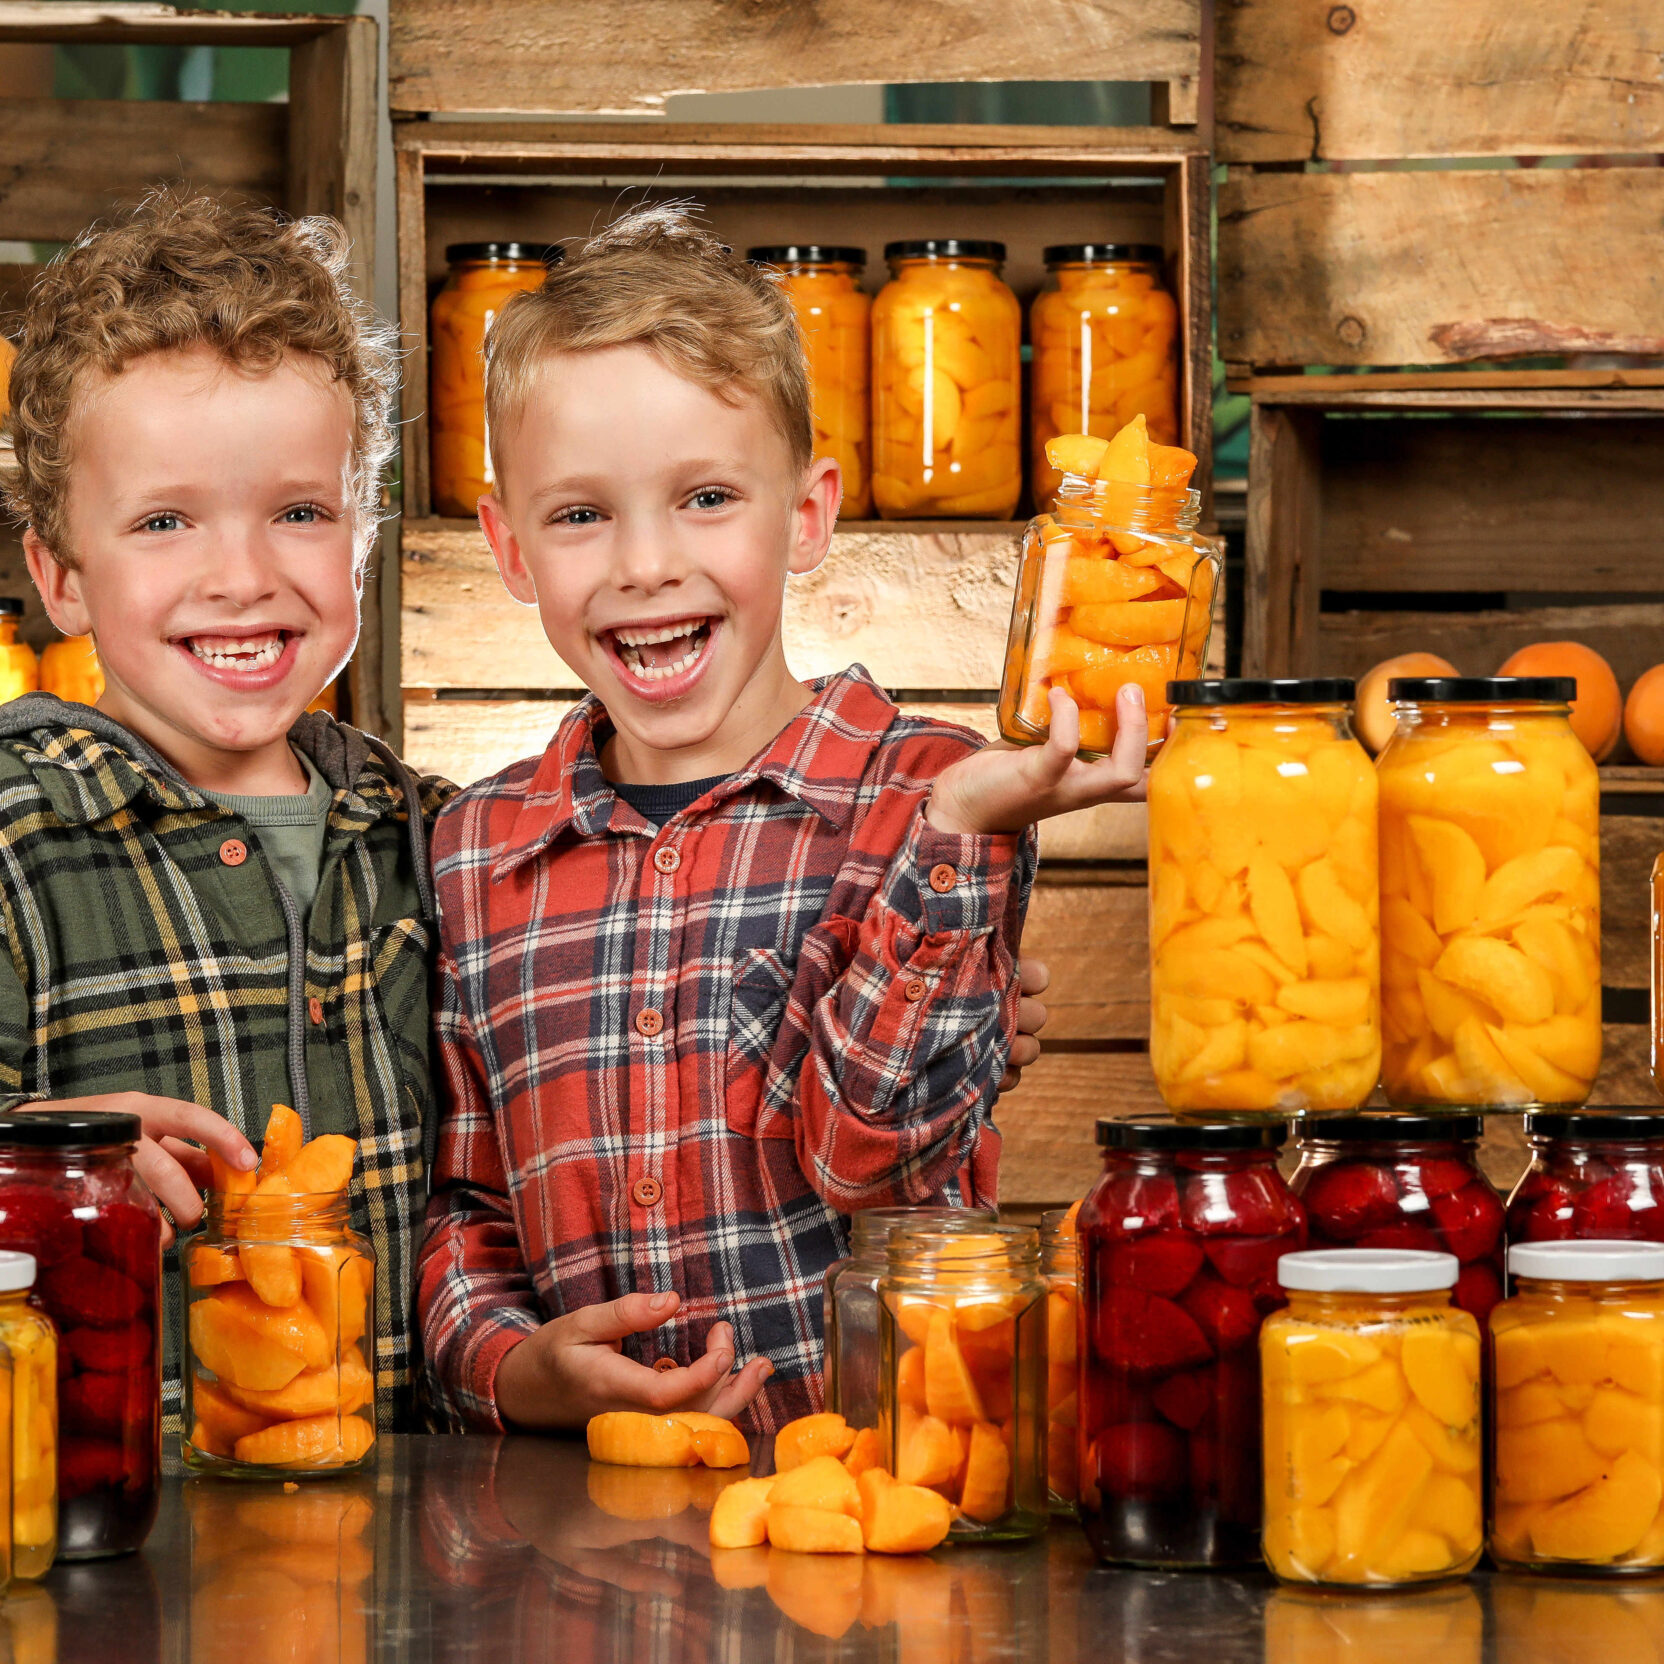 Fruit preserving season is now underway Rayner's Orchards is providing classes in how to preserve fruit. Twins, Hudson and Carter, 6.  Picture: Tim Carrafa